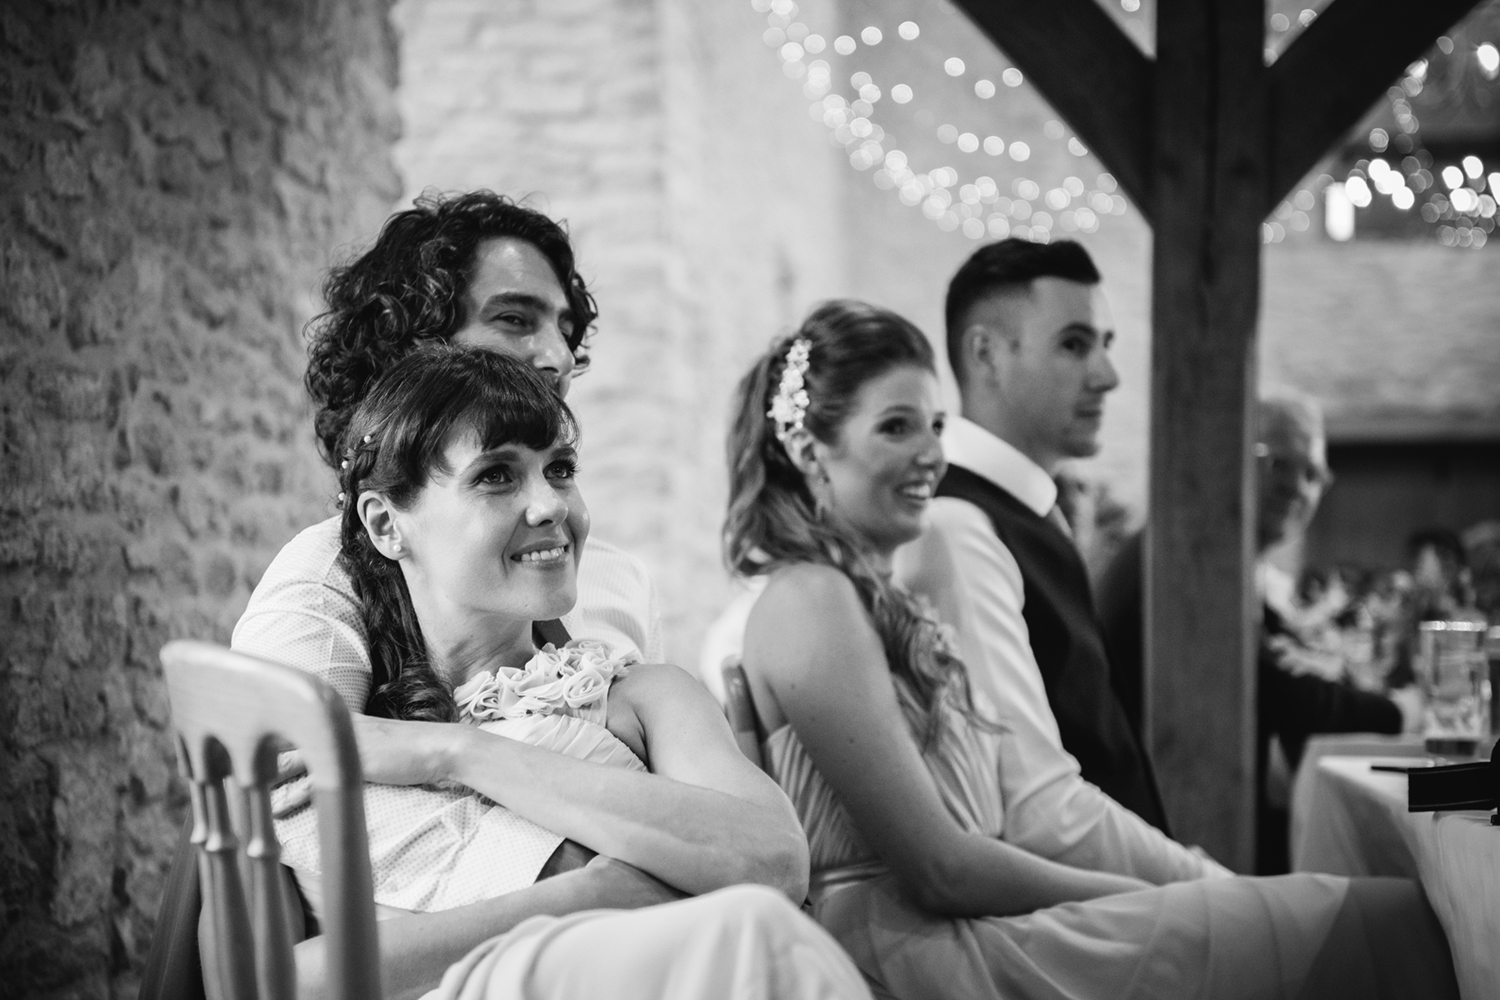 Kingscote-Barn-Wedding-Photographer-91.jpg